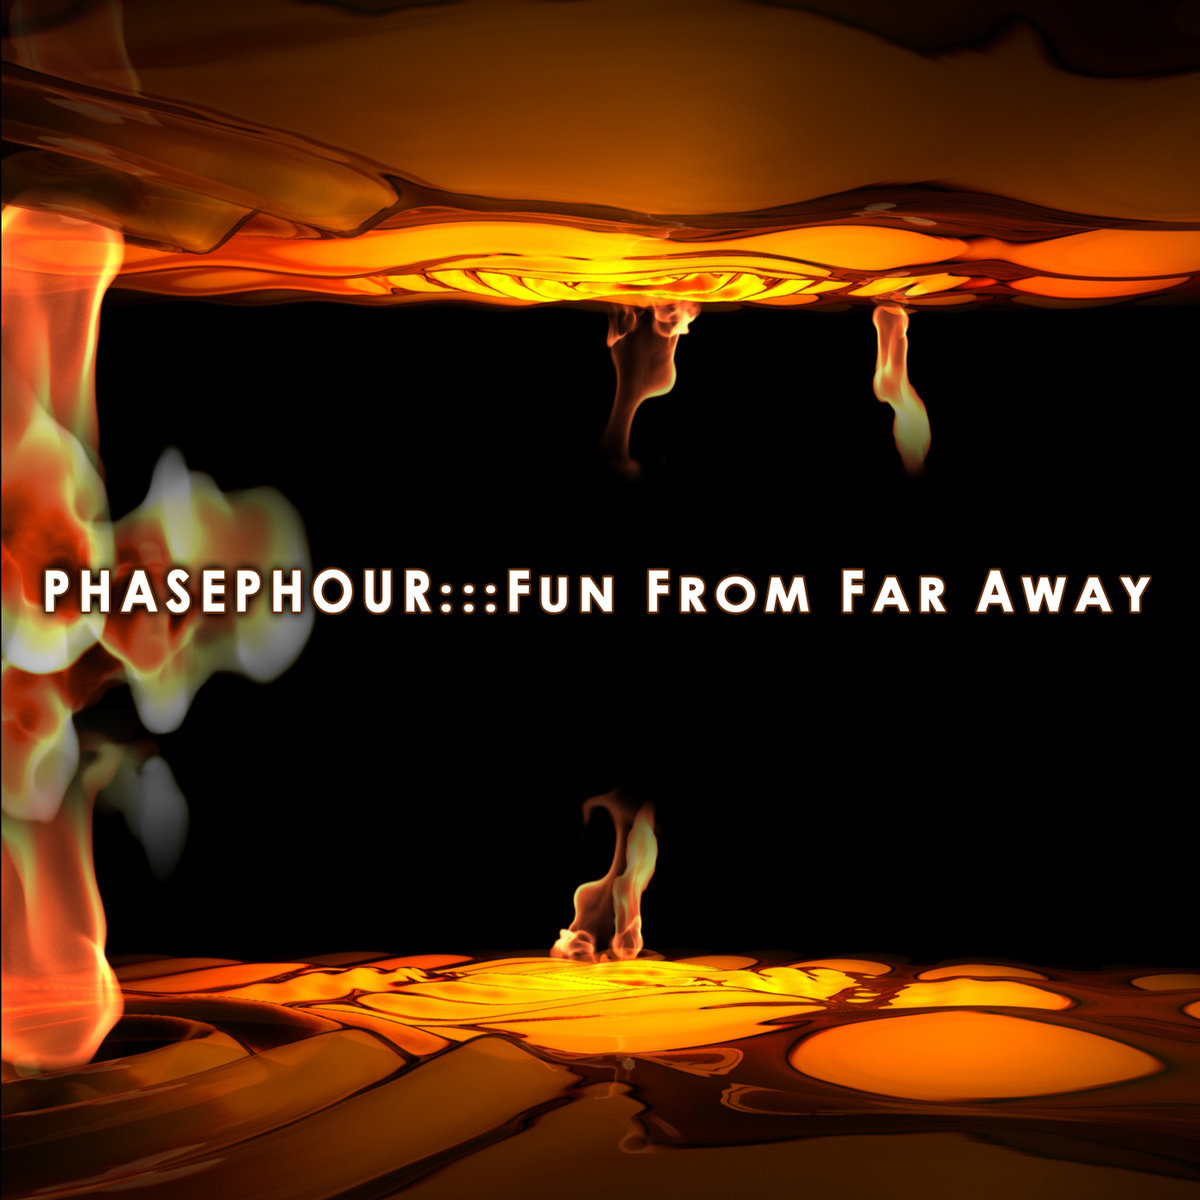 PhasePhour - Fun From Far Away @ 'Fun From Far Away' album (electronic, goa)